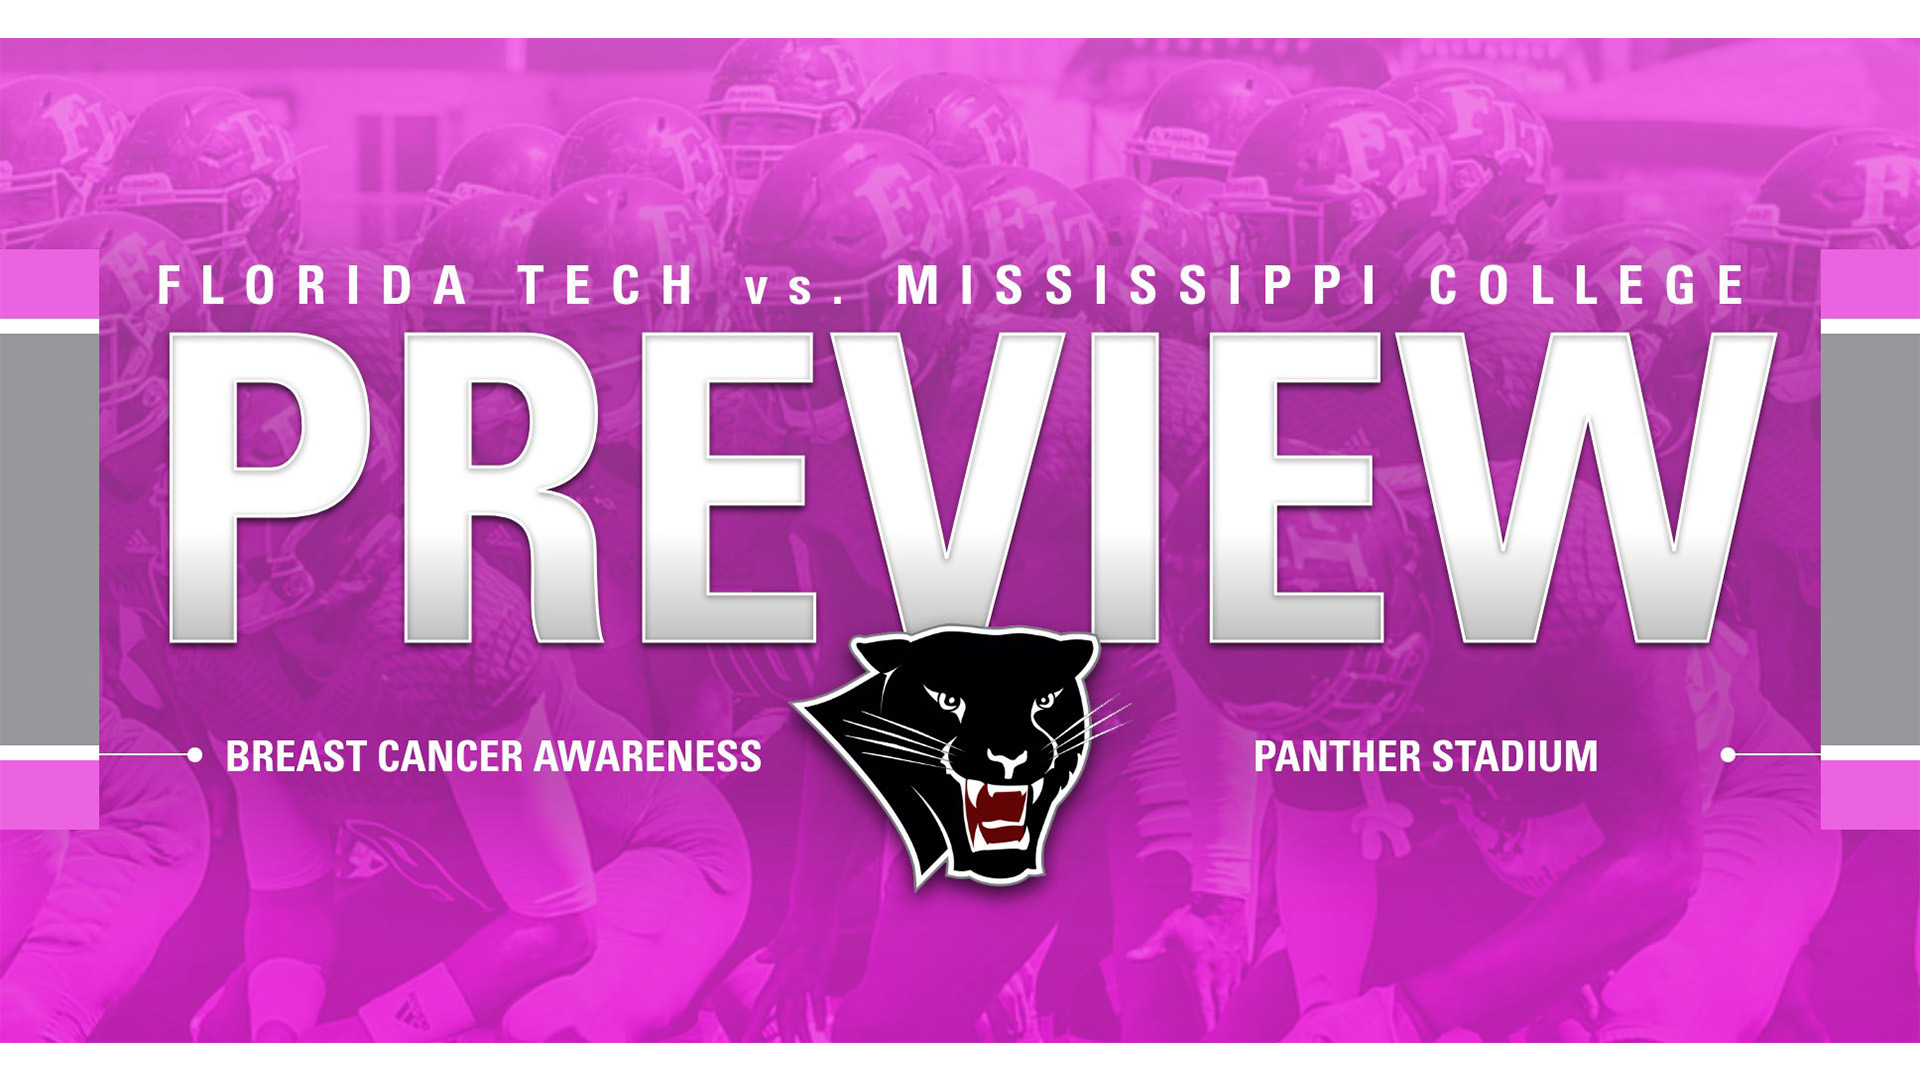 Football Hosts Choctaws In Breast Cancer Awareness Game